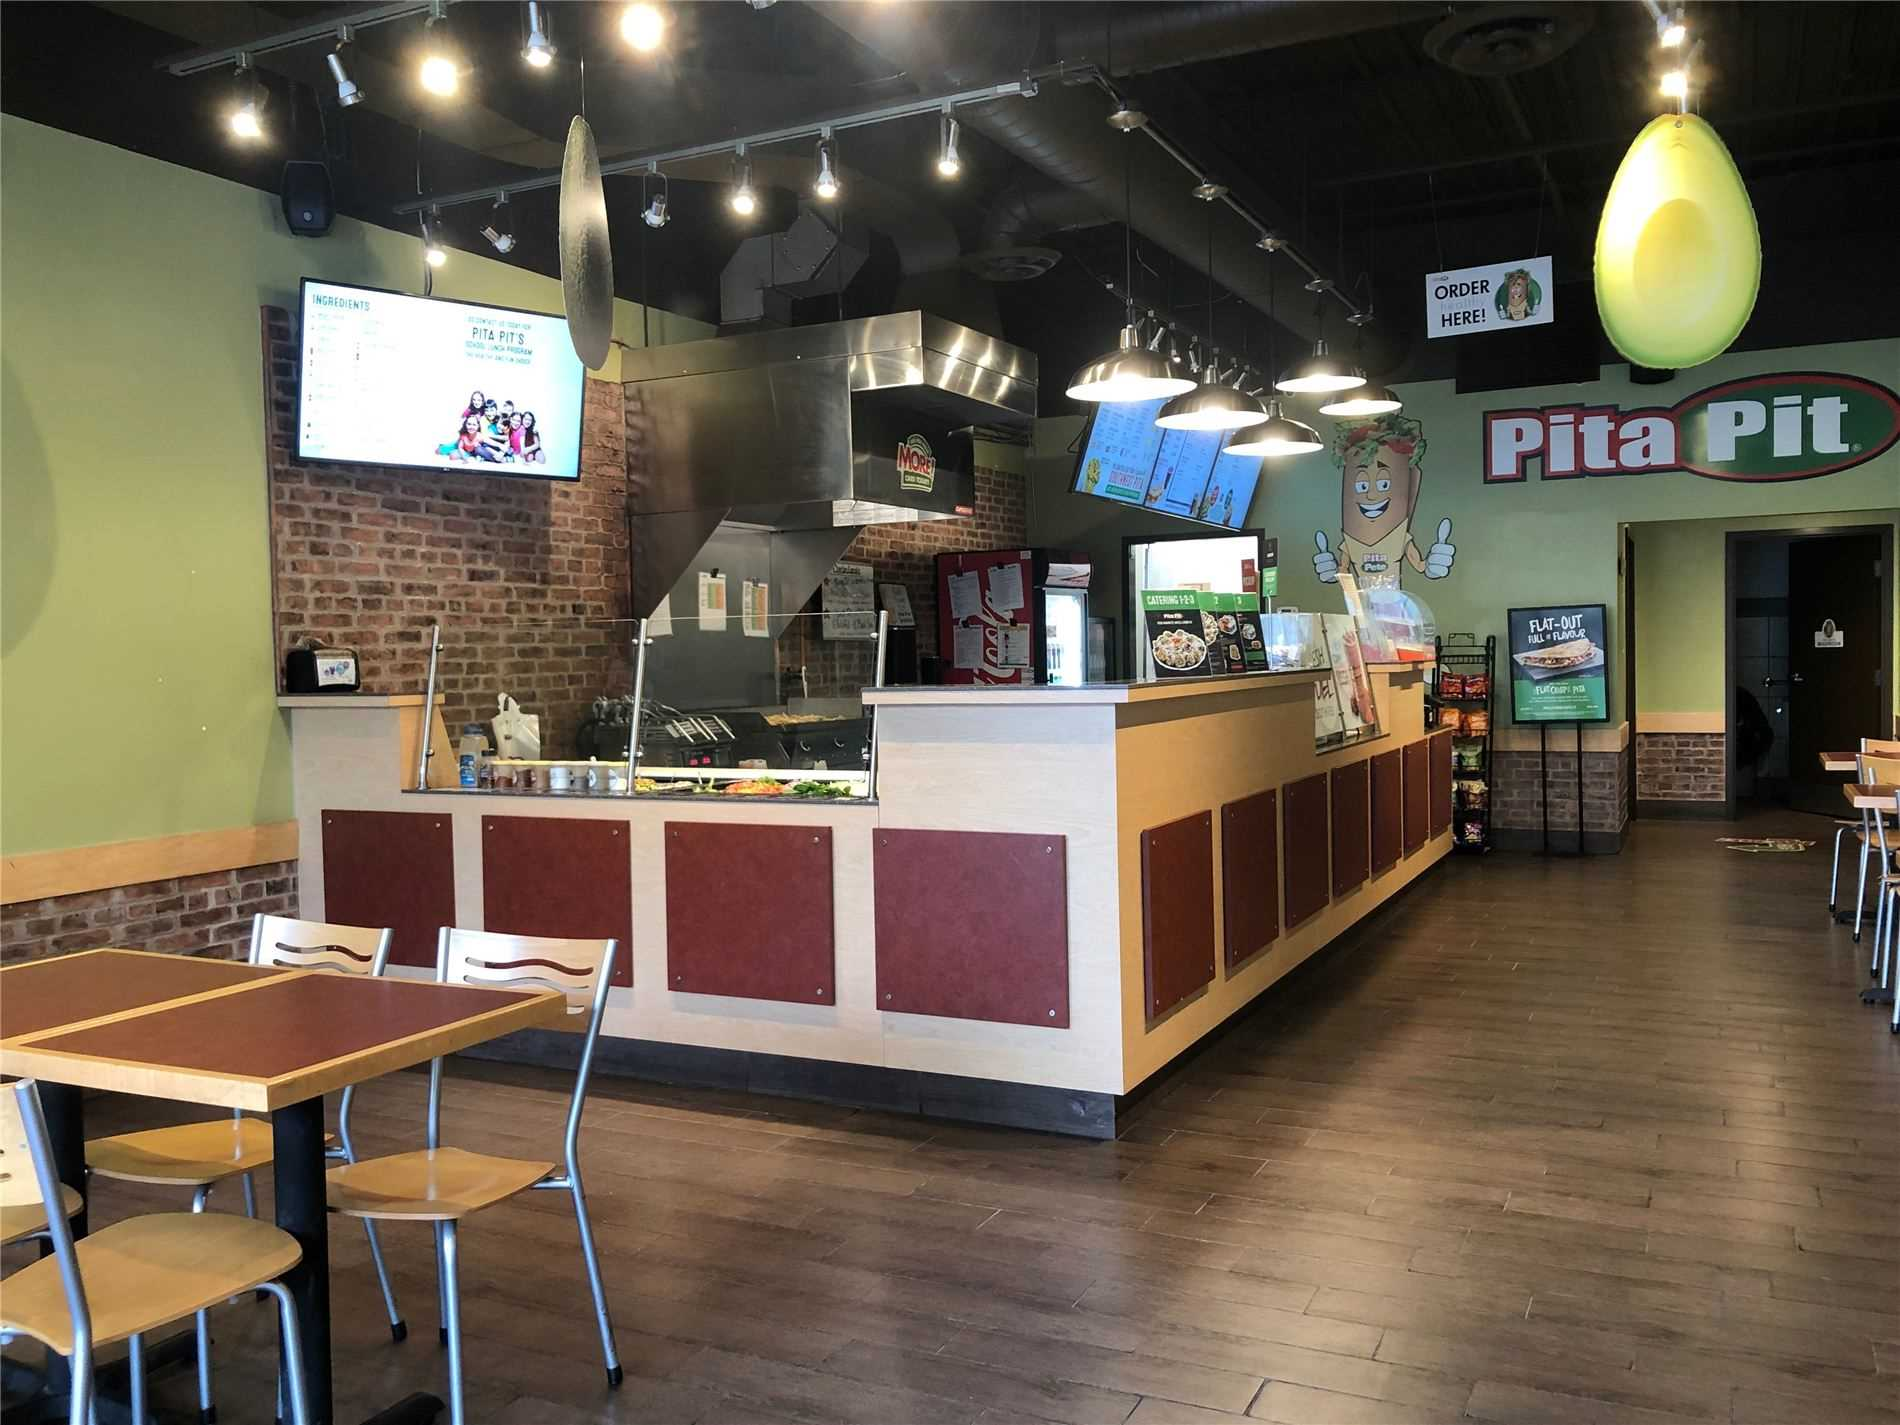 Ready To Be Your Own Boss?? Successful Pita Pit Franchise Available In Hamilton's Lovely & Picturesque Community Of Dundas! Strong Franchise Presence Across Canada W/ Over 600 Stores! This Opportunity Is Best Suited For Hands On Operator With Sales To Prove It! Opportunity To Expand Menu Offerings W/ Yogen Fruz Addition!